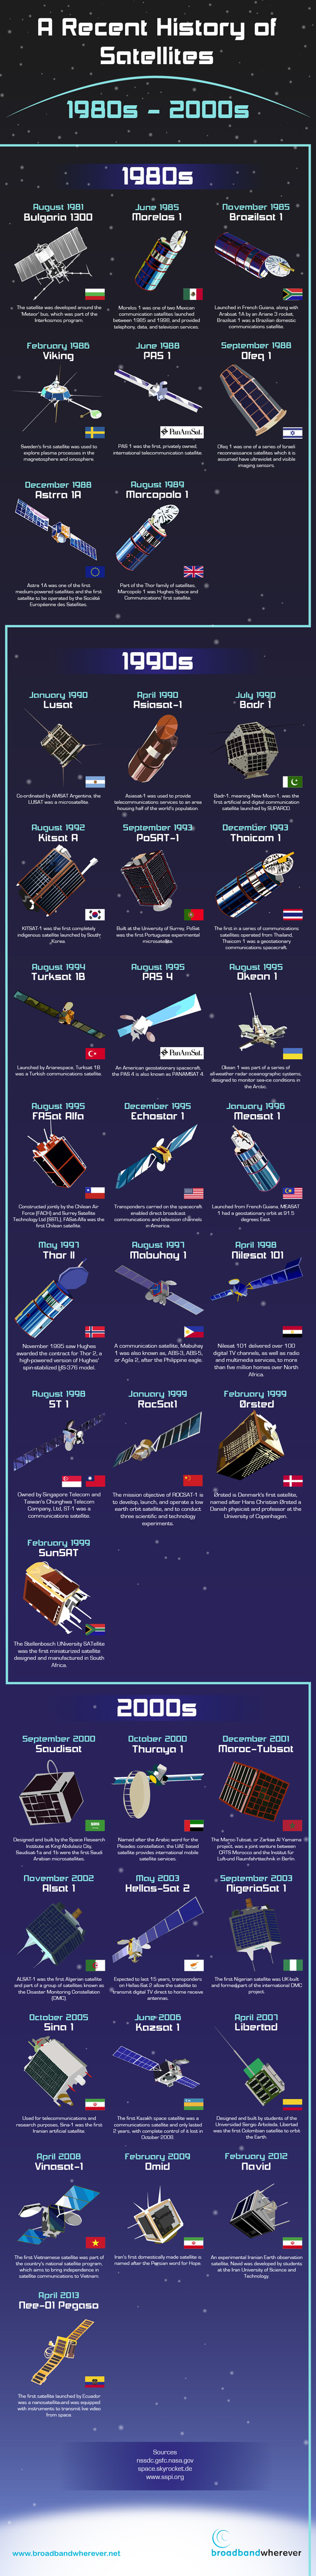 Recent history of satellites - 1980s to 2000s